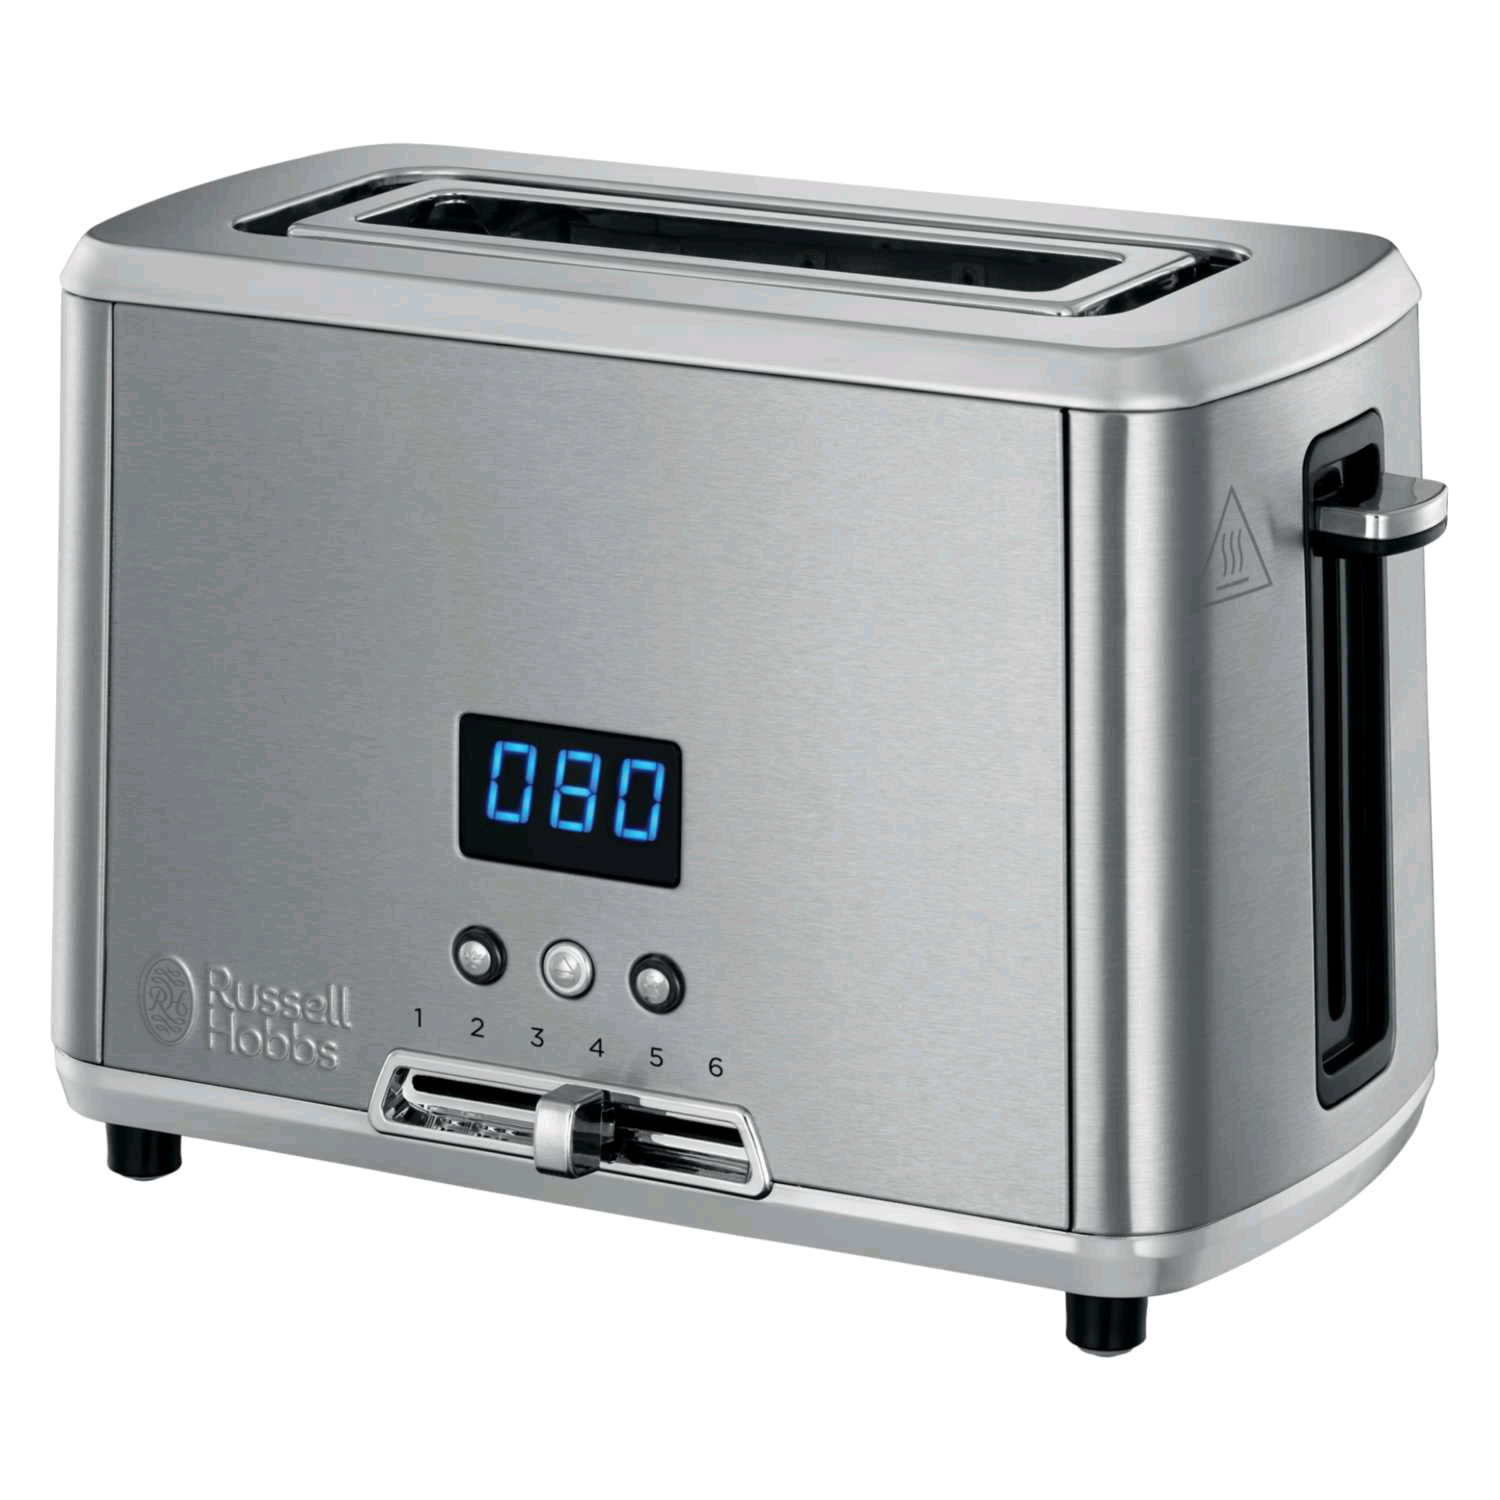 Russell Hobbs Compact Home 1 Slice Toaster